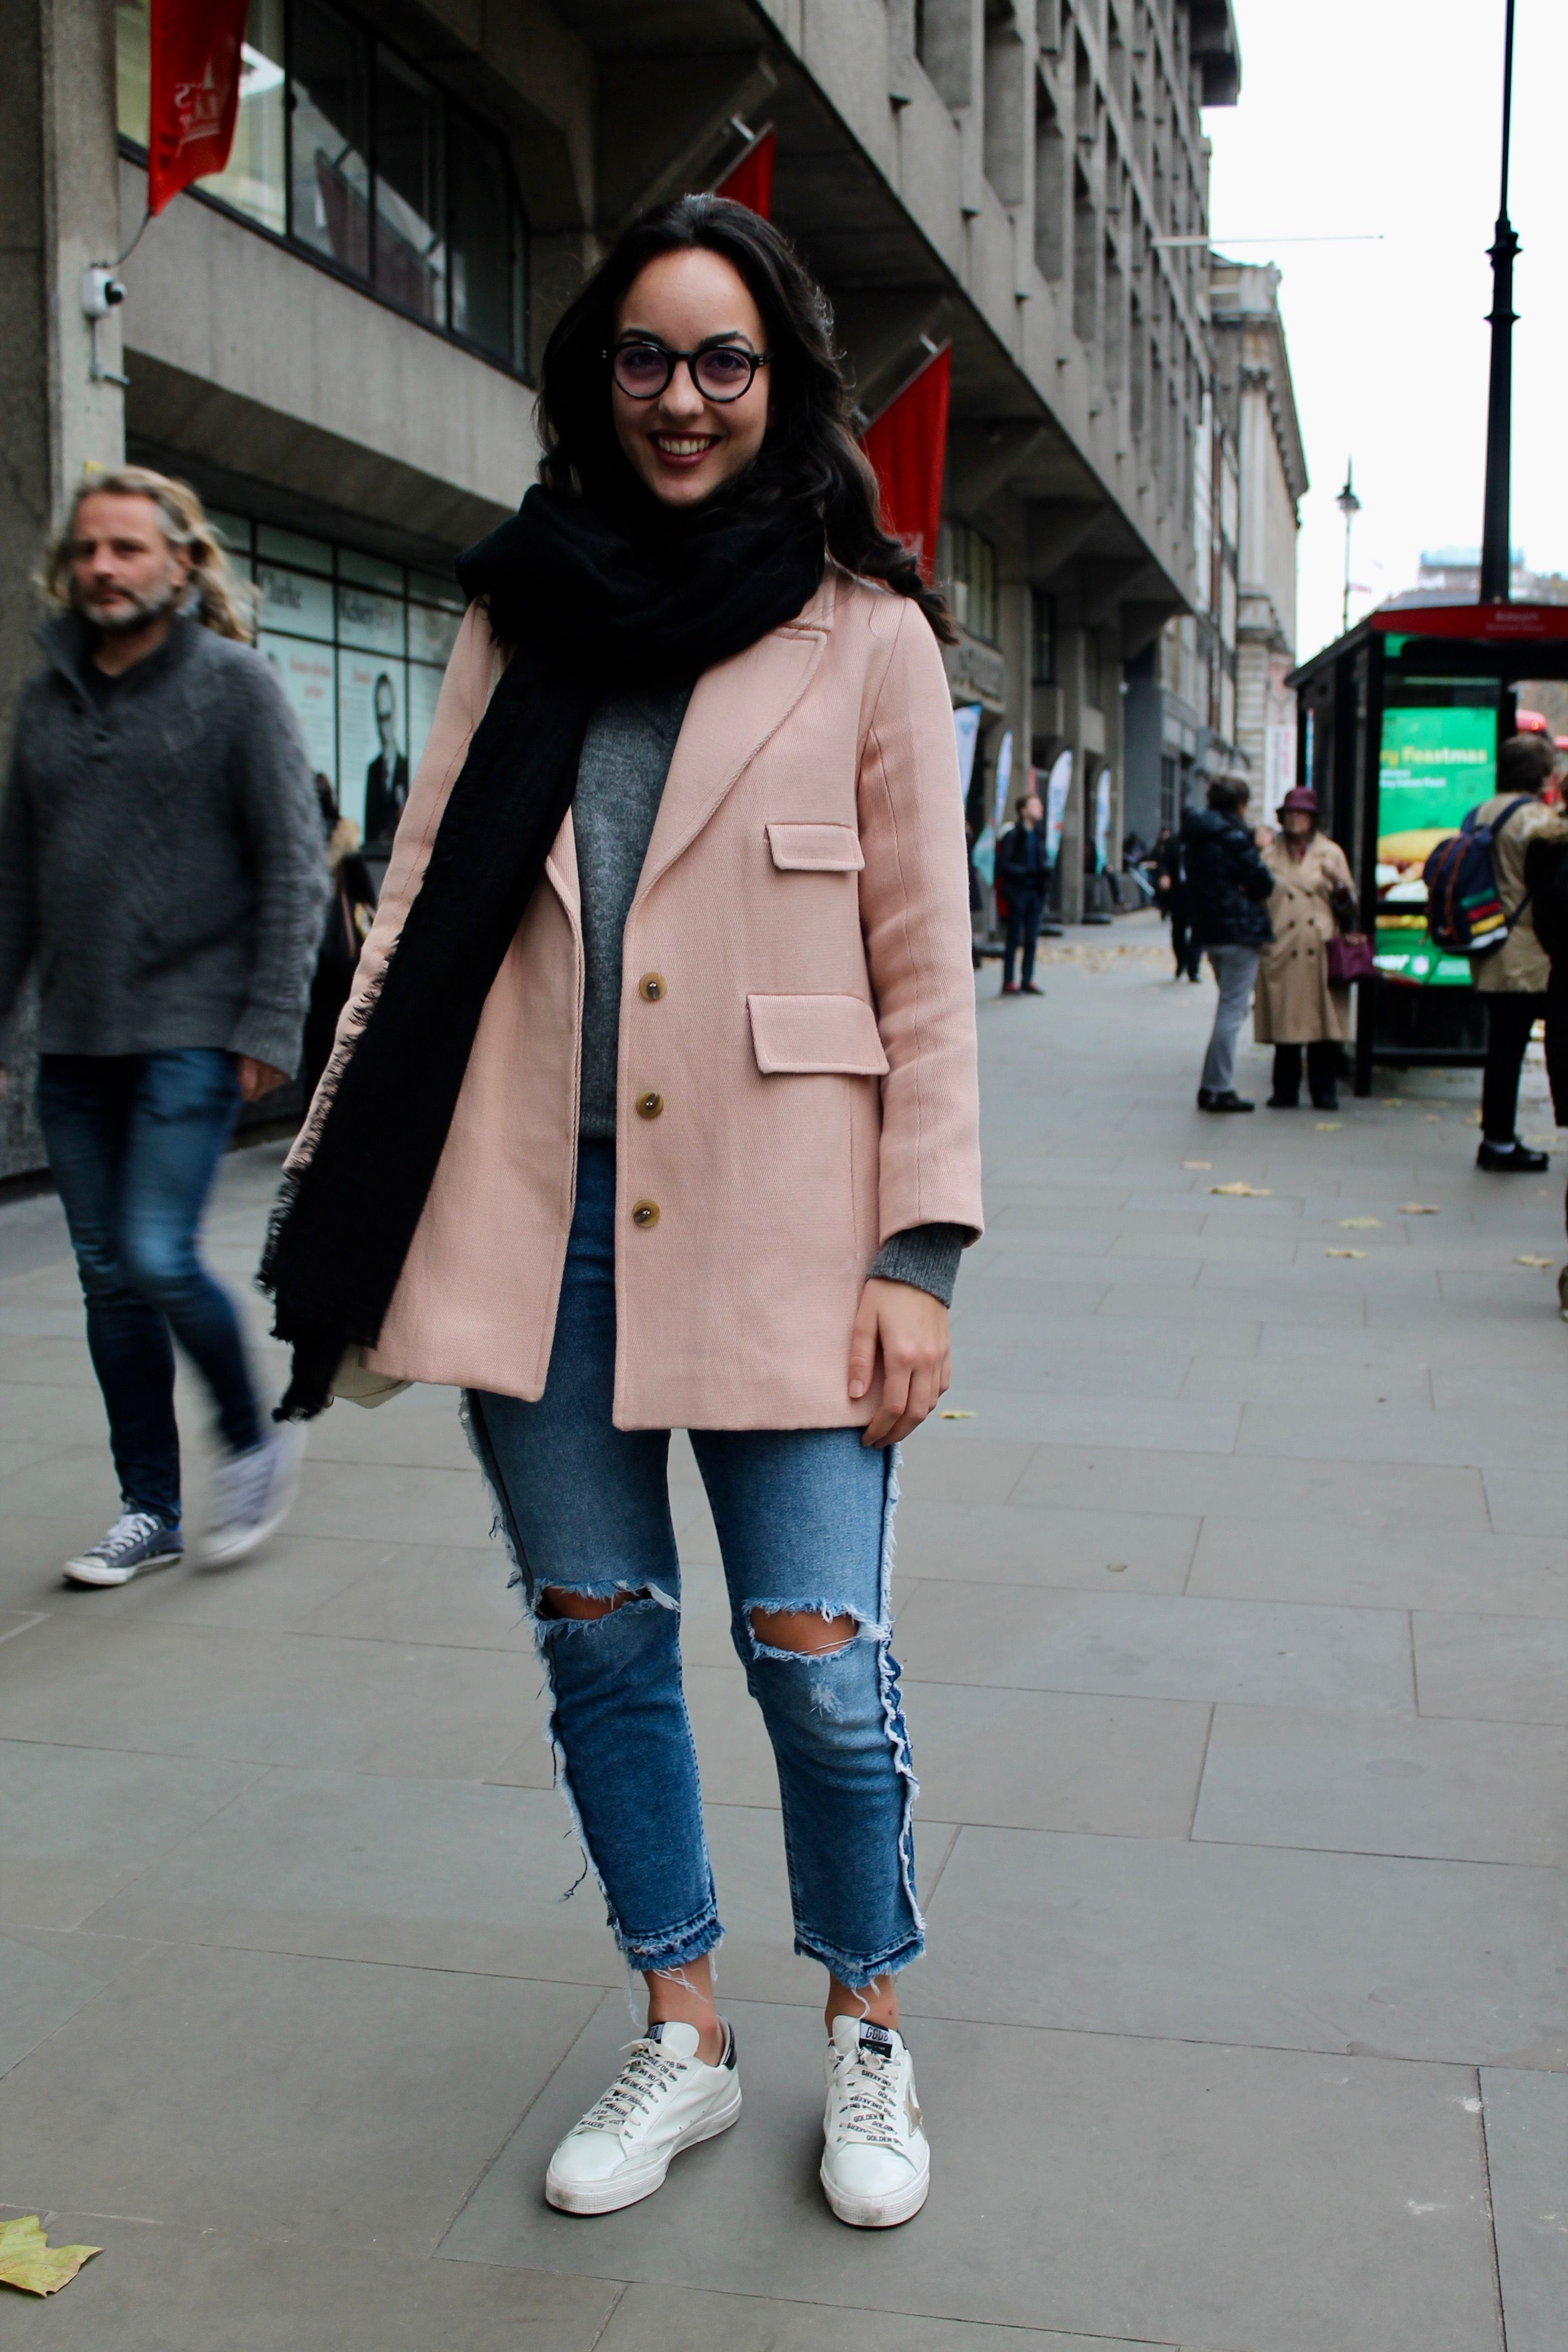 59f2bb50fd9507 We found out what winter coats and jackets KCL students are wearing ...